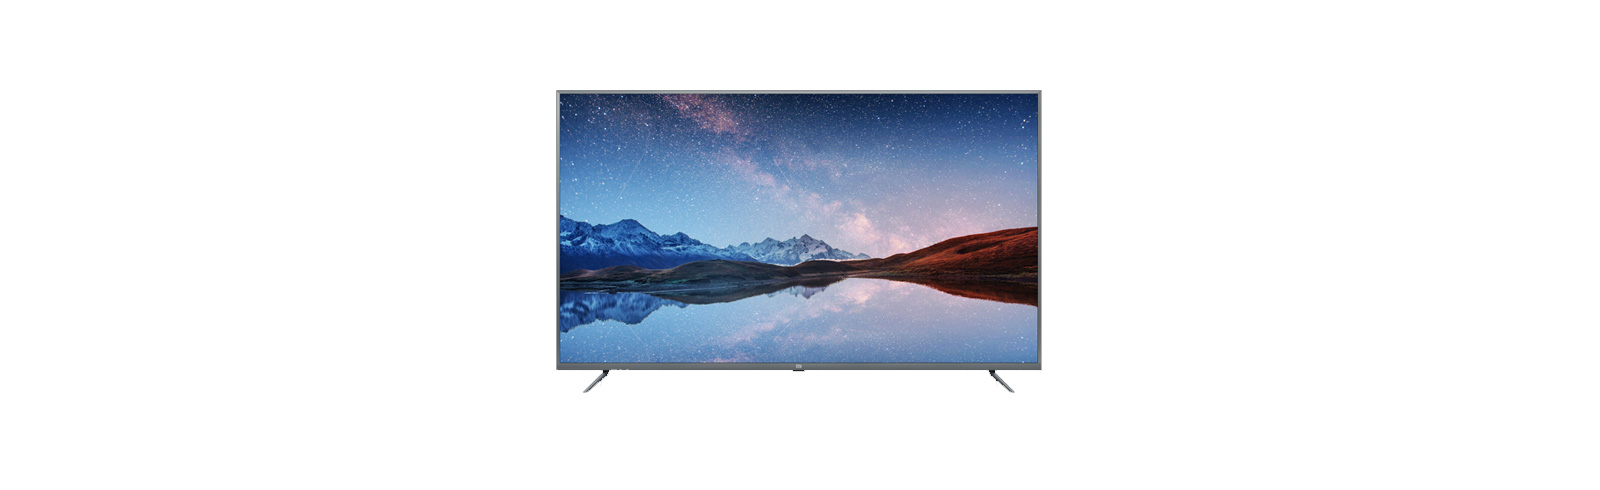 "Xiaomi India launches the 40"" Mi TV 4A and the Mi TV 4X in 43"", 50"" and 65"" sizes"